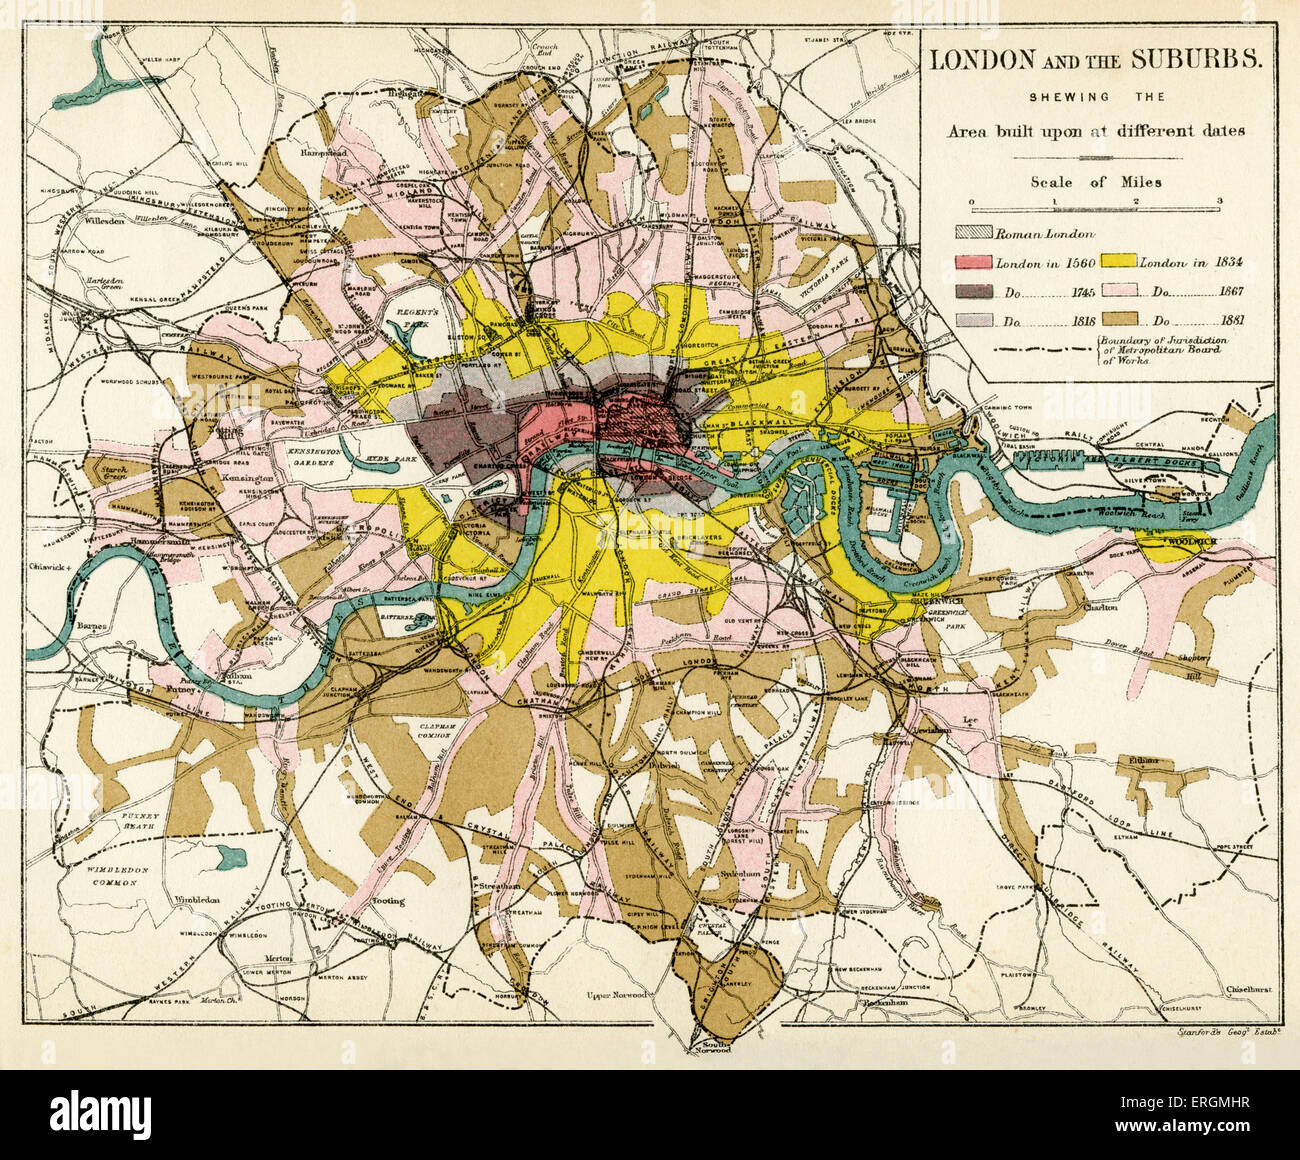 london and its suburbs 1894 showing expansion of london suburbs out of the